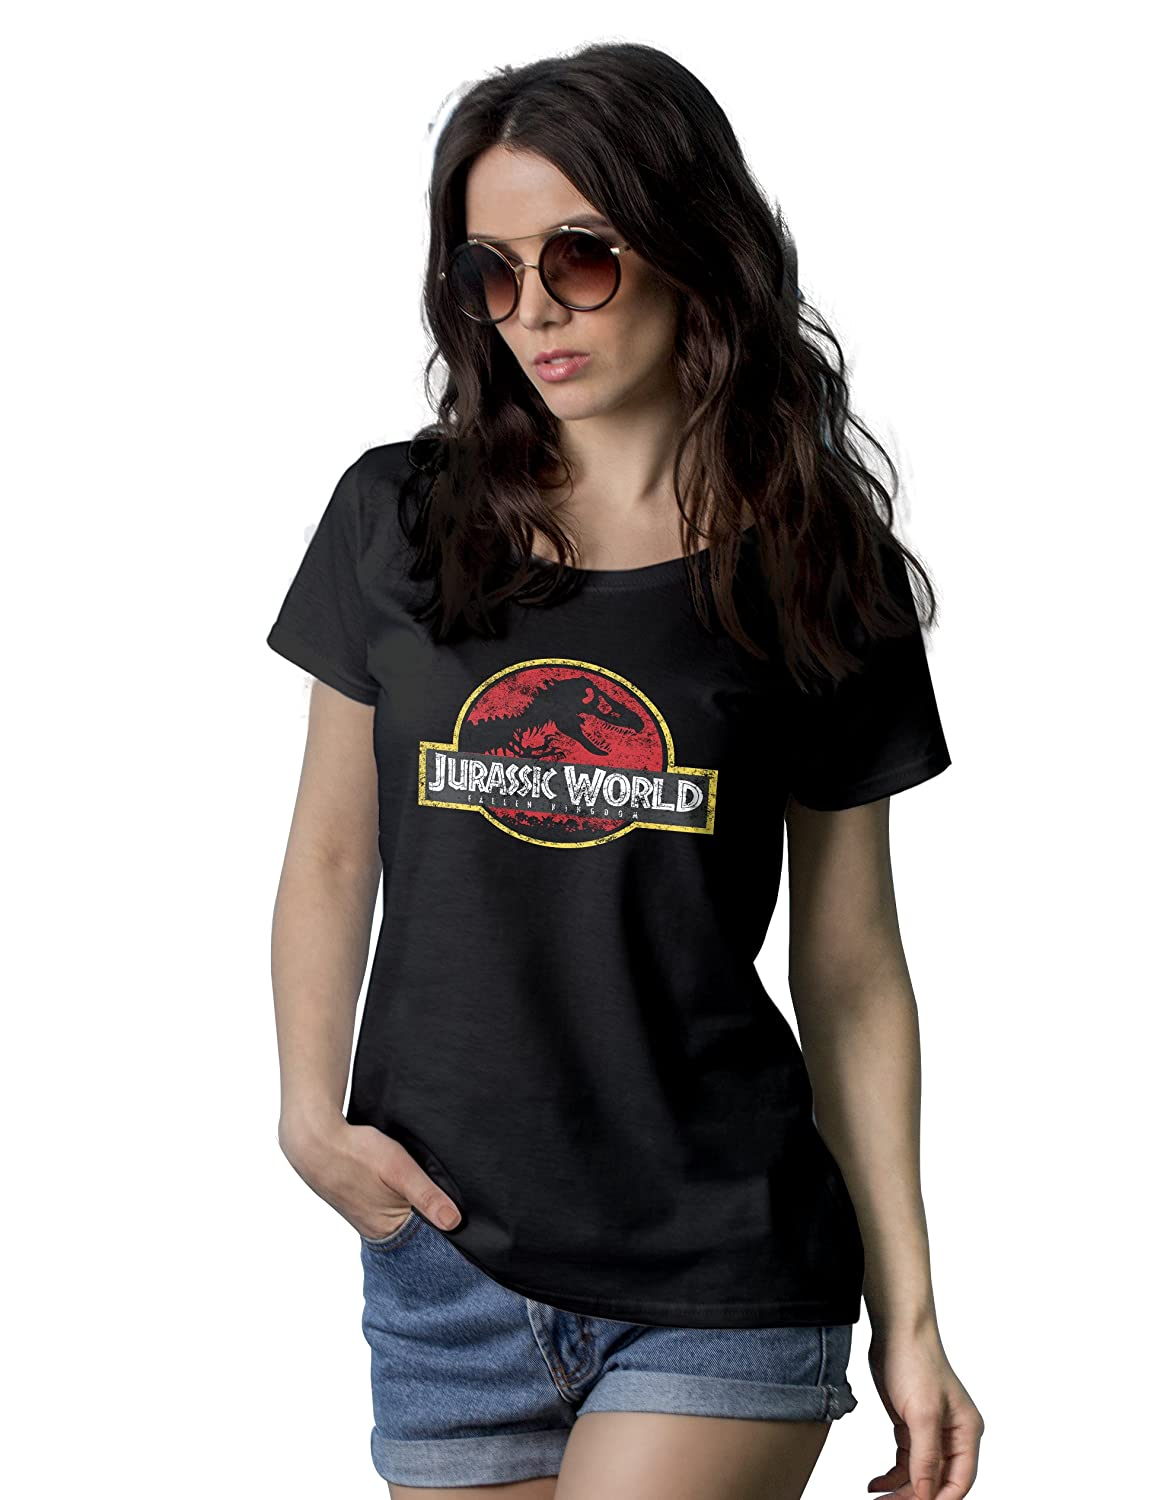 799b43310aa0d Jurassic WorldT Shirt has been hand selected by Decrum team